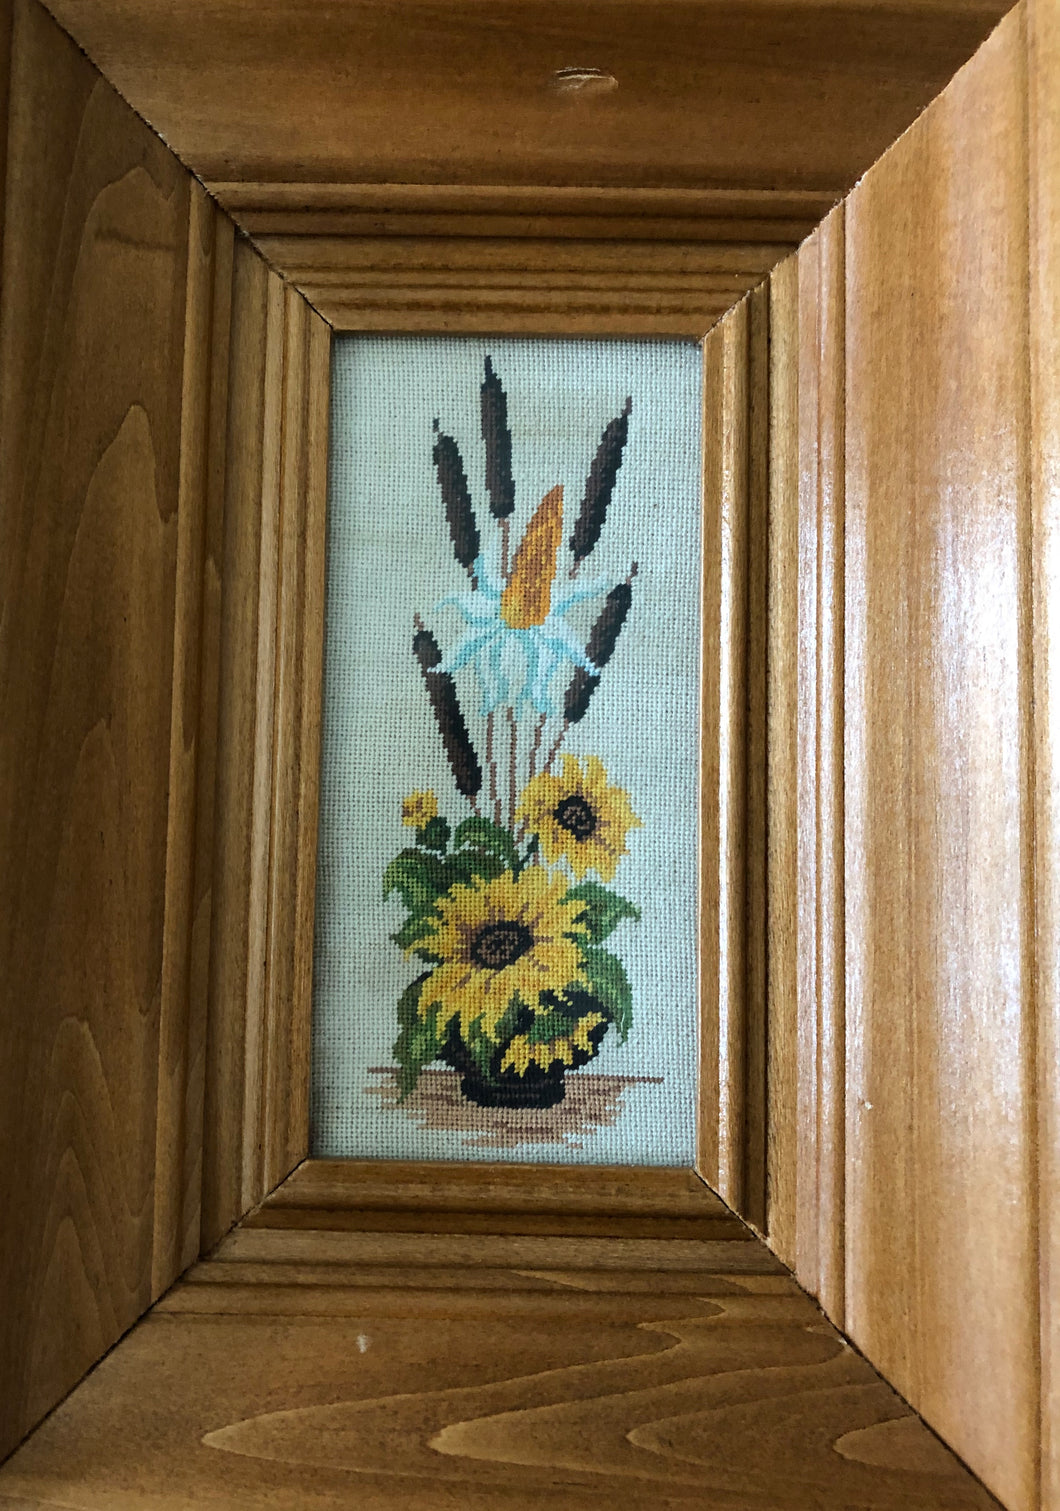 Sunflowers Goblin The Best of Style Floral Accents New for Spring Great Looks at Great Prices Charming Gallery Handmade Art by Maria Iliescu